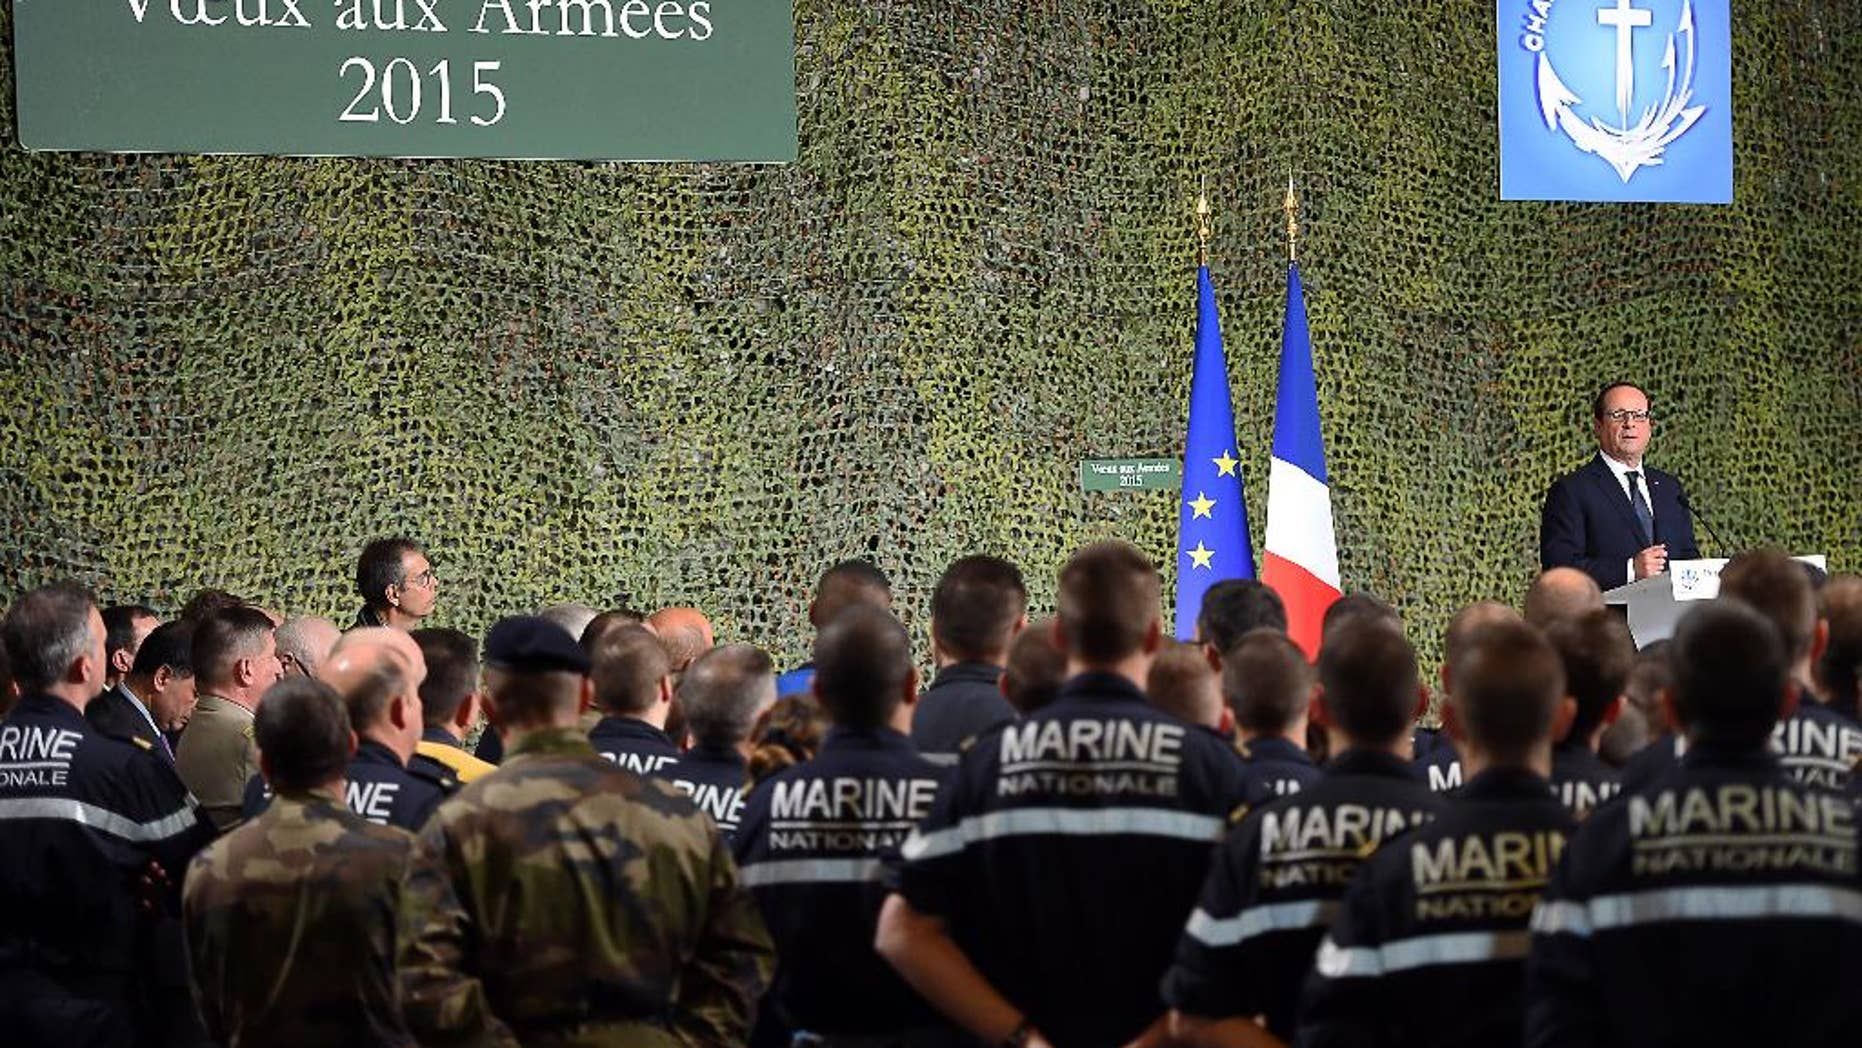 French President Francois Hollande delivers a speech during his visit to the French nuclear aircraft carrier Charles de Gaulle to present his New Year wishes to the French military troops, Wednesday, Jan. 14, 2015, off the coast of Toulon, southern France. France ordered prosecutors around the country to crack down on hate speech, anti-Semitism and glorifying terrorism and announced Wednesday it was sending an aircraft carrier to the Mideast to work more closely with the U.S.-led coalition fighting Islamic State militants. (AP Photo/ Anne Christine Poujoulat /Pool)